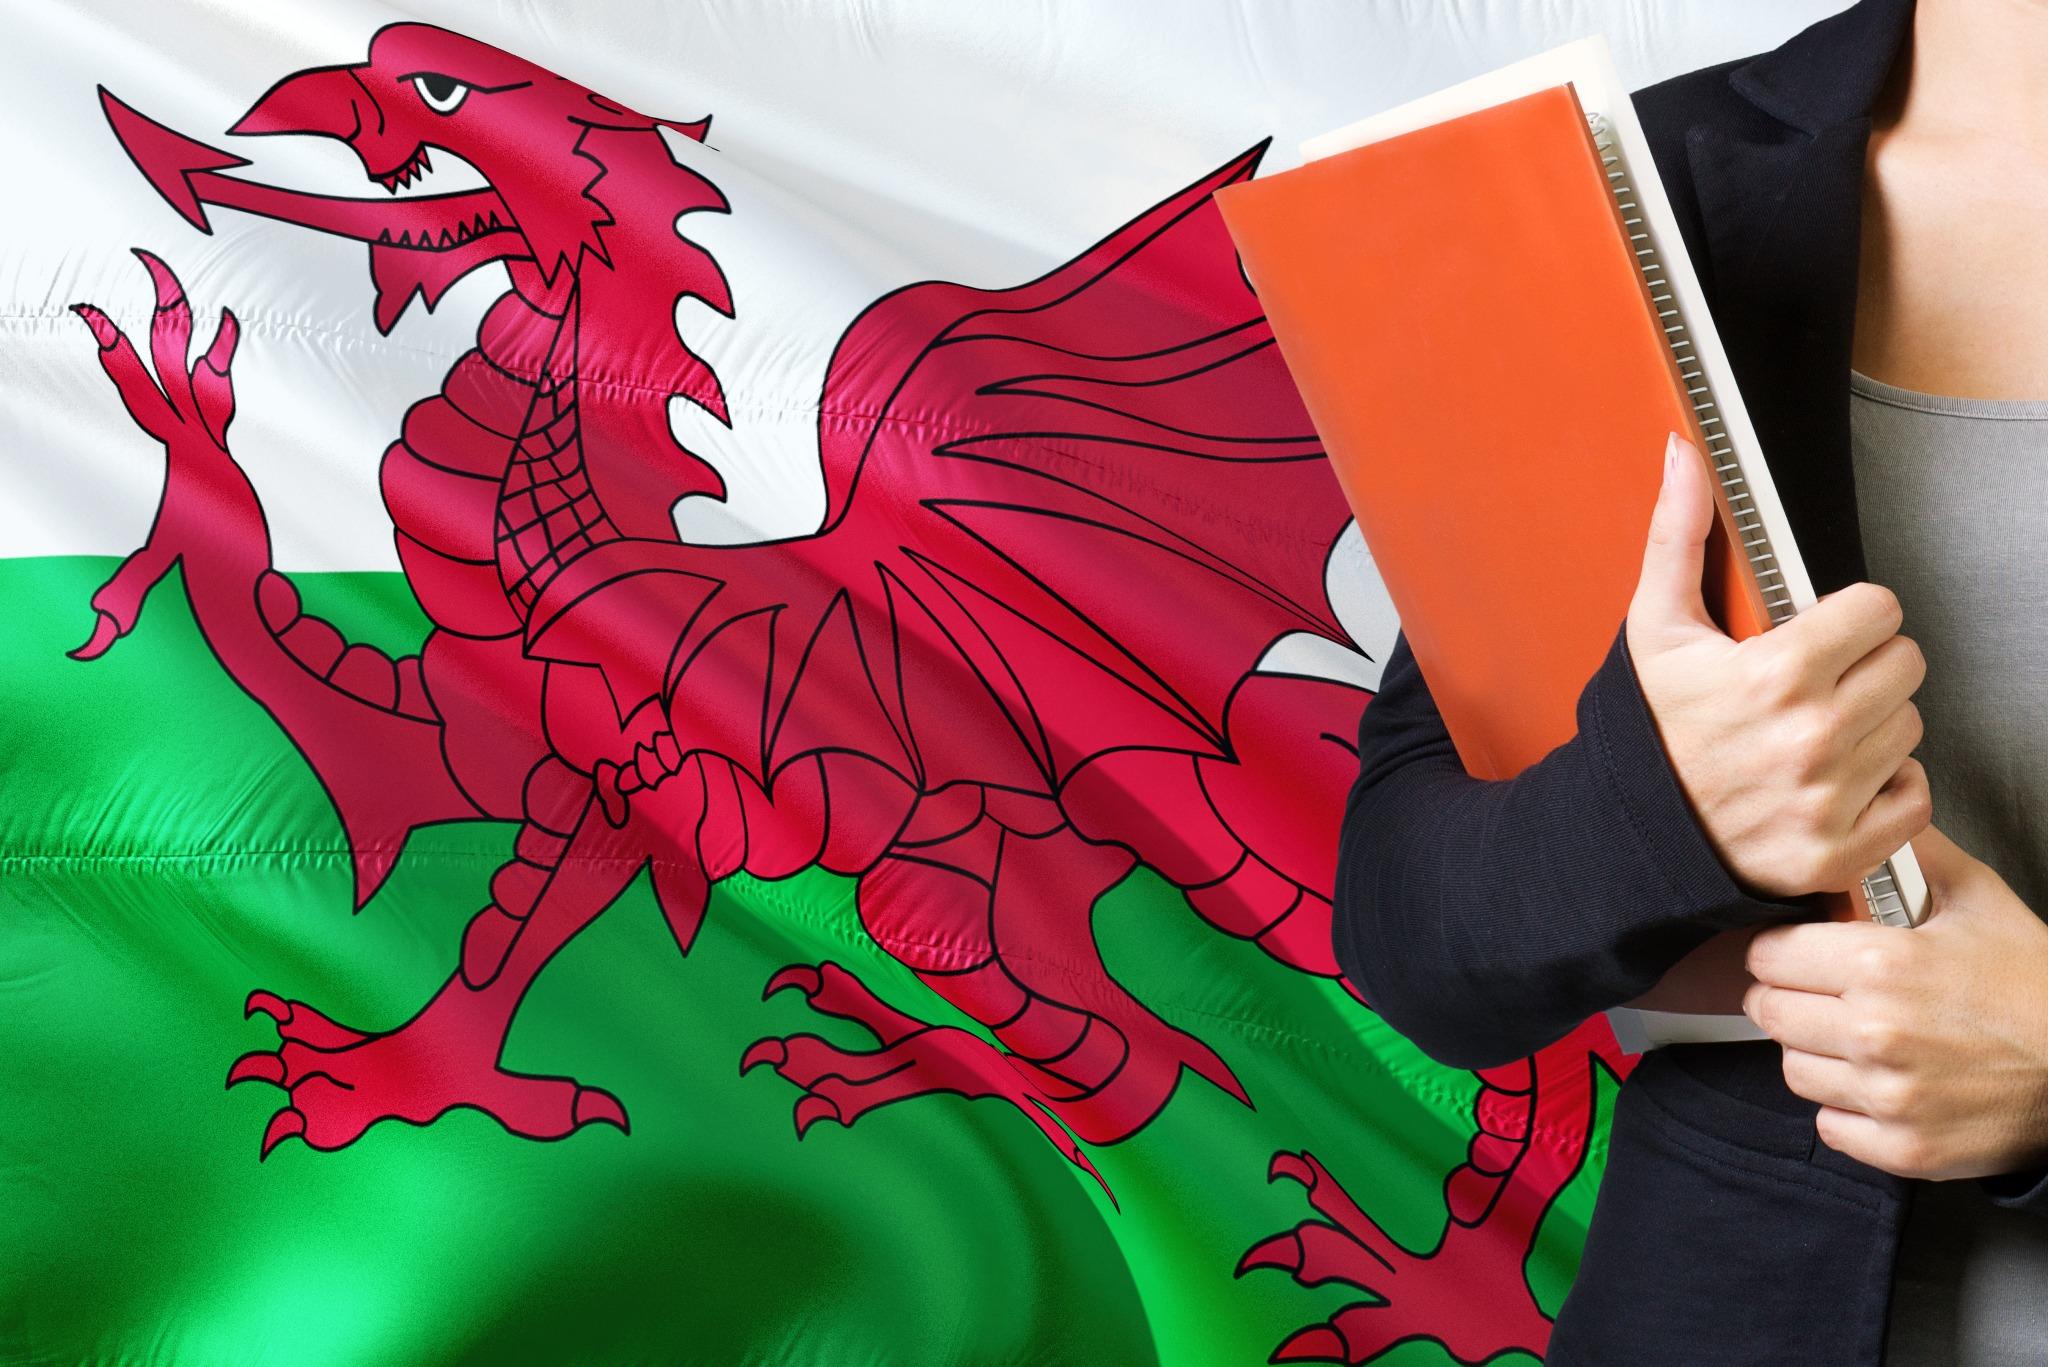 A woman holding a large notebook in front of a large Welsh flag